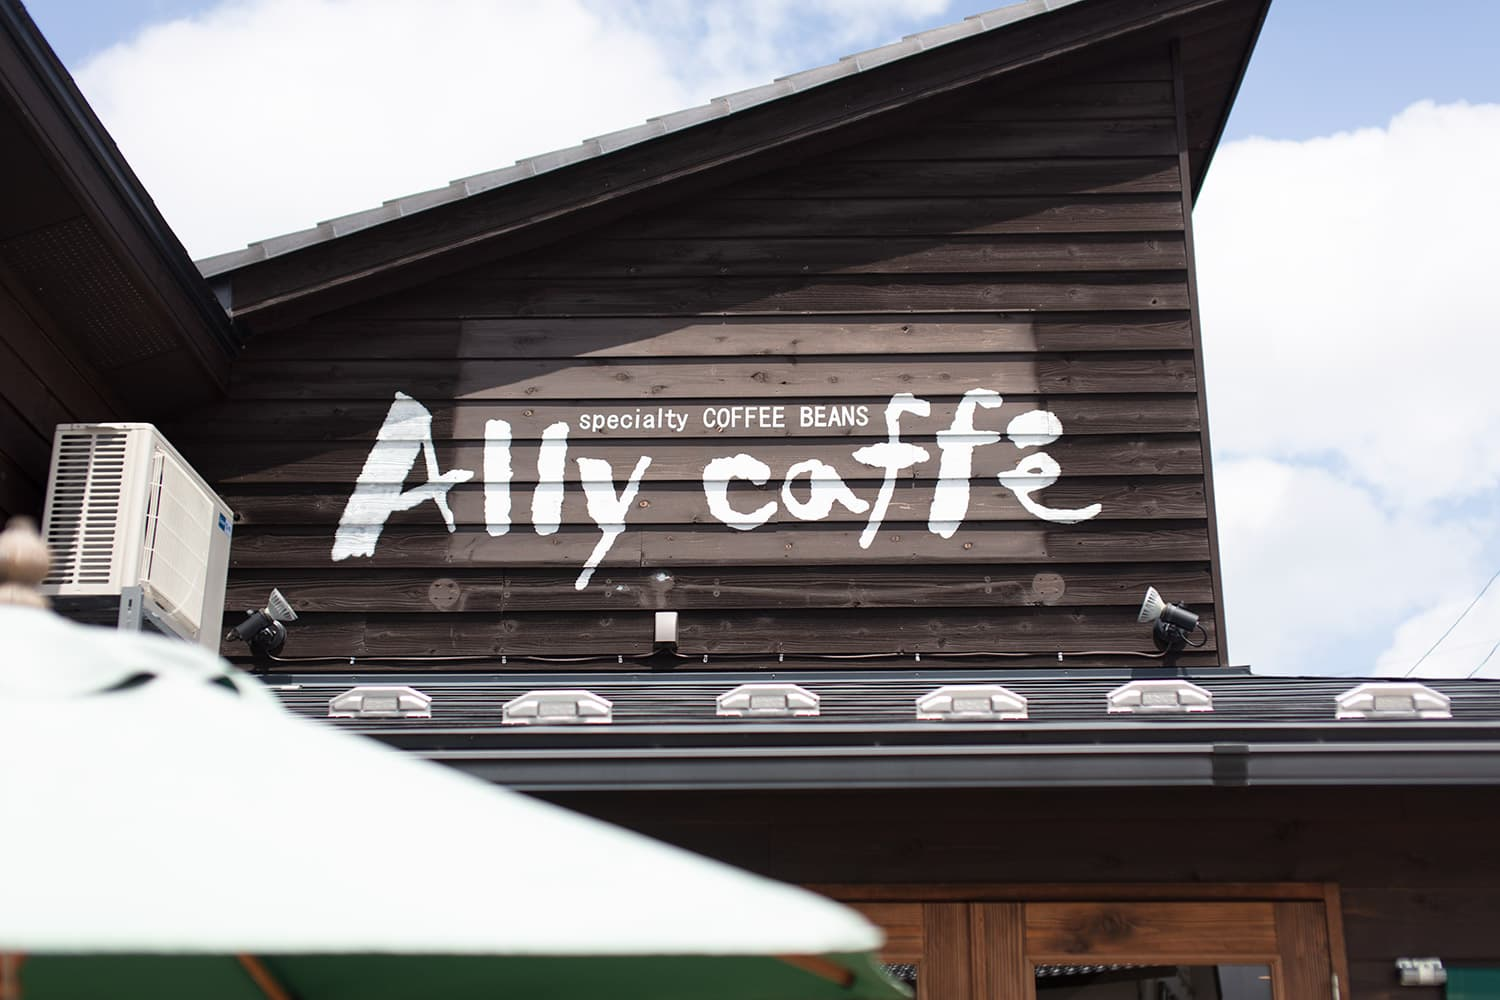 Ally cafe 店外サイン